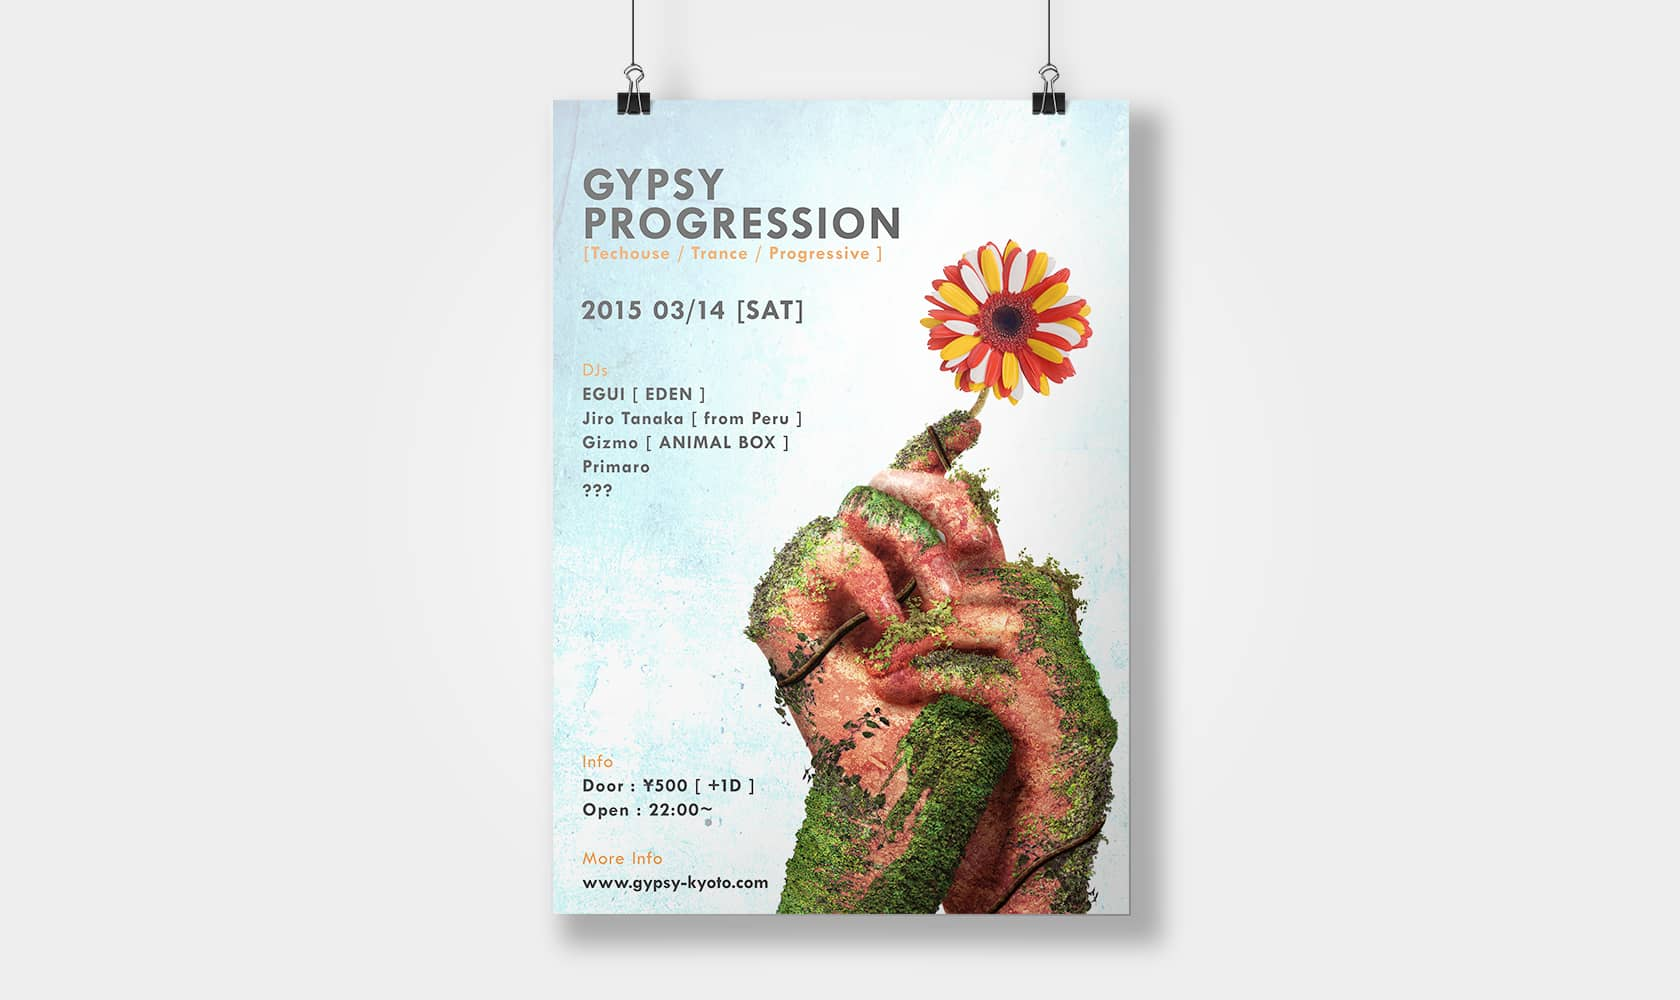 GYPSY PROGRESSION 2015.3.14